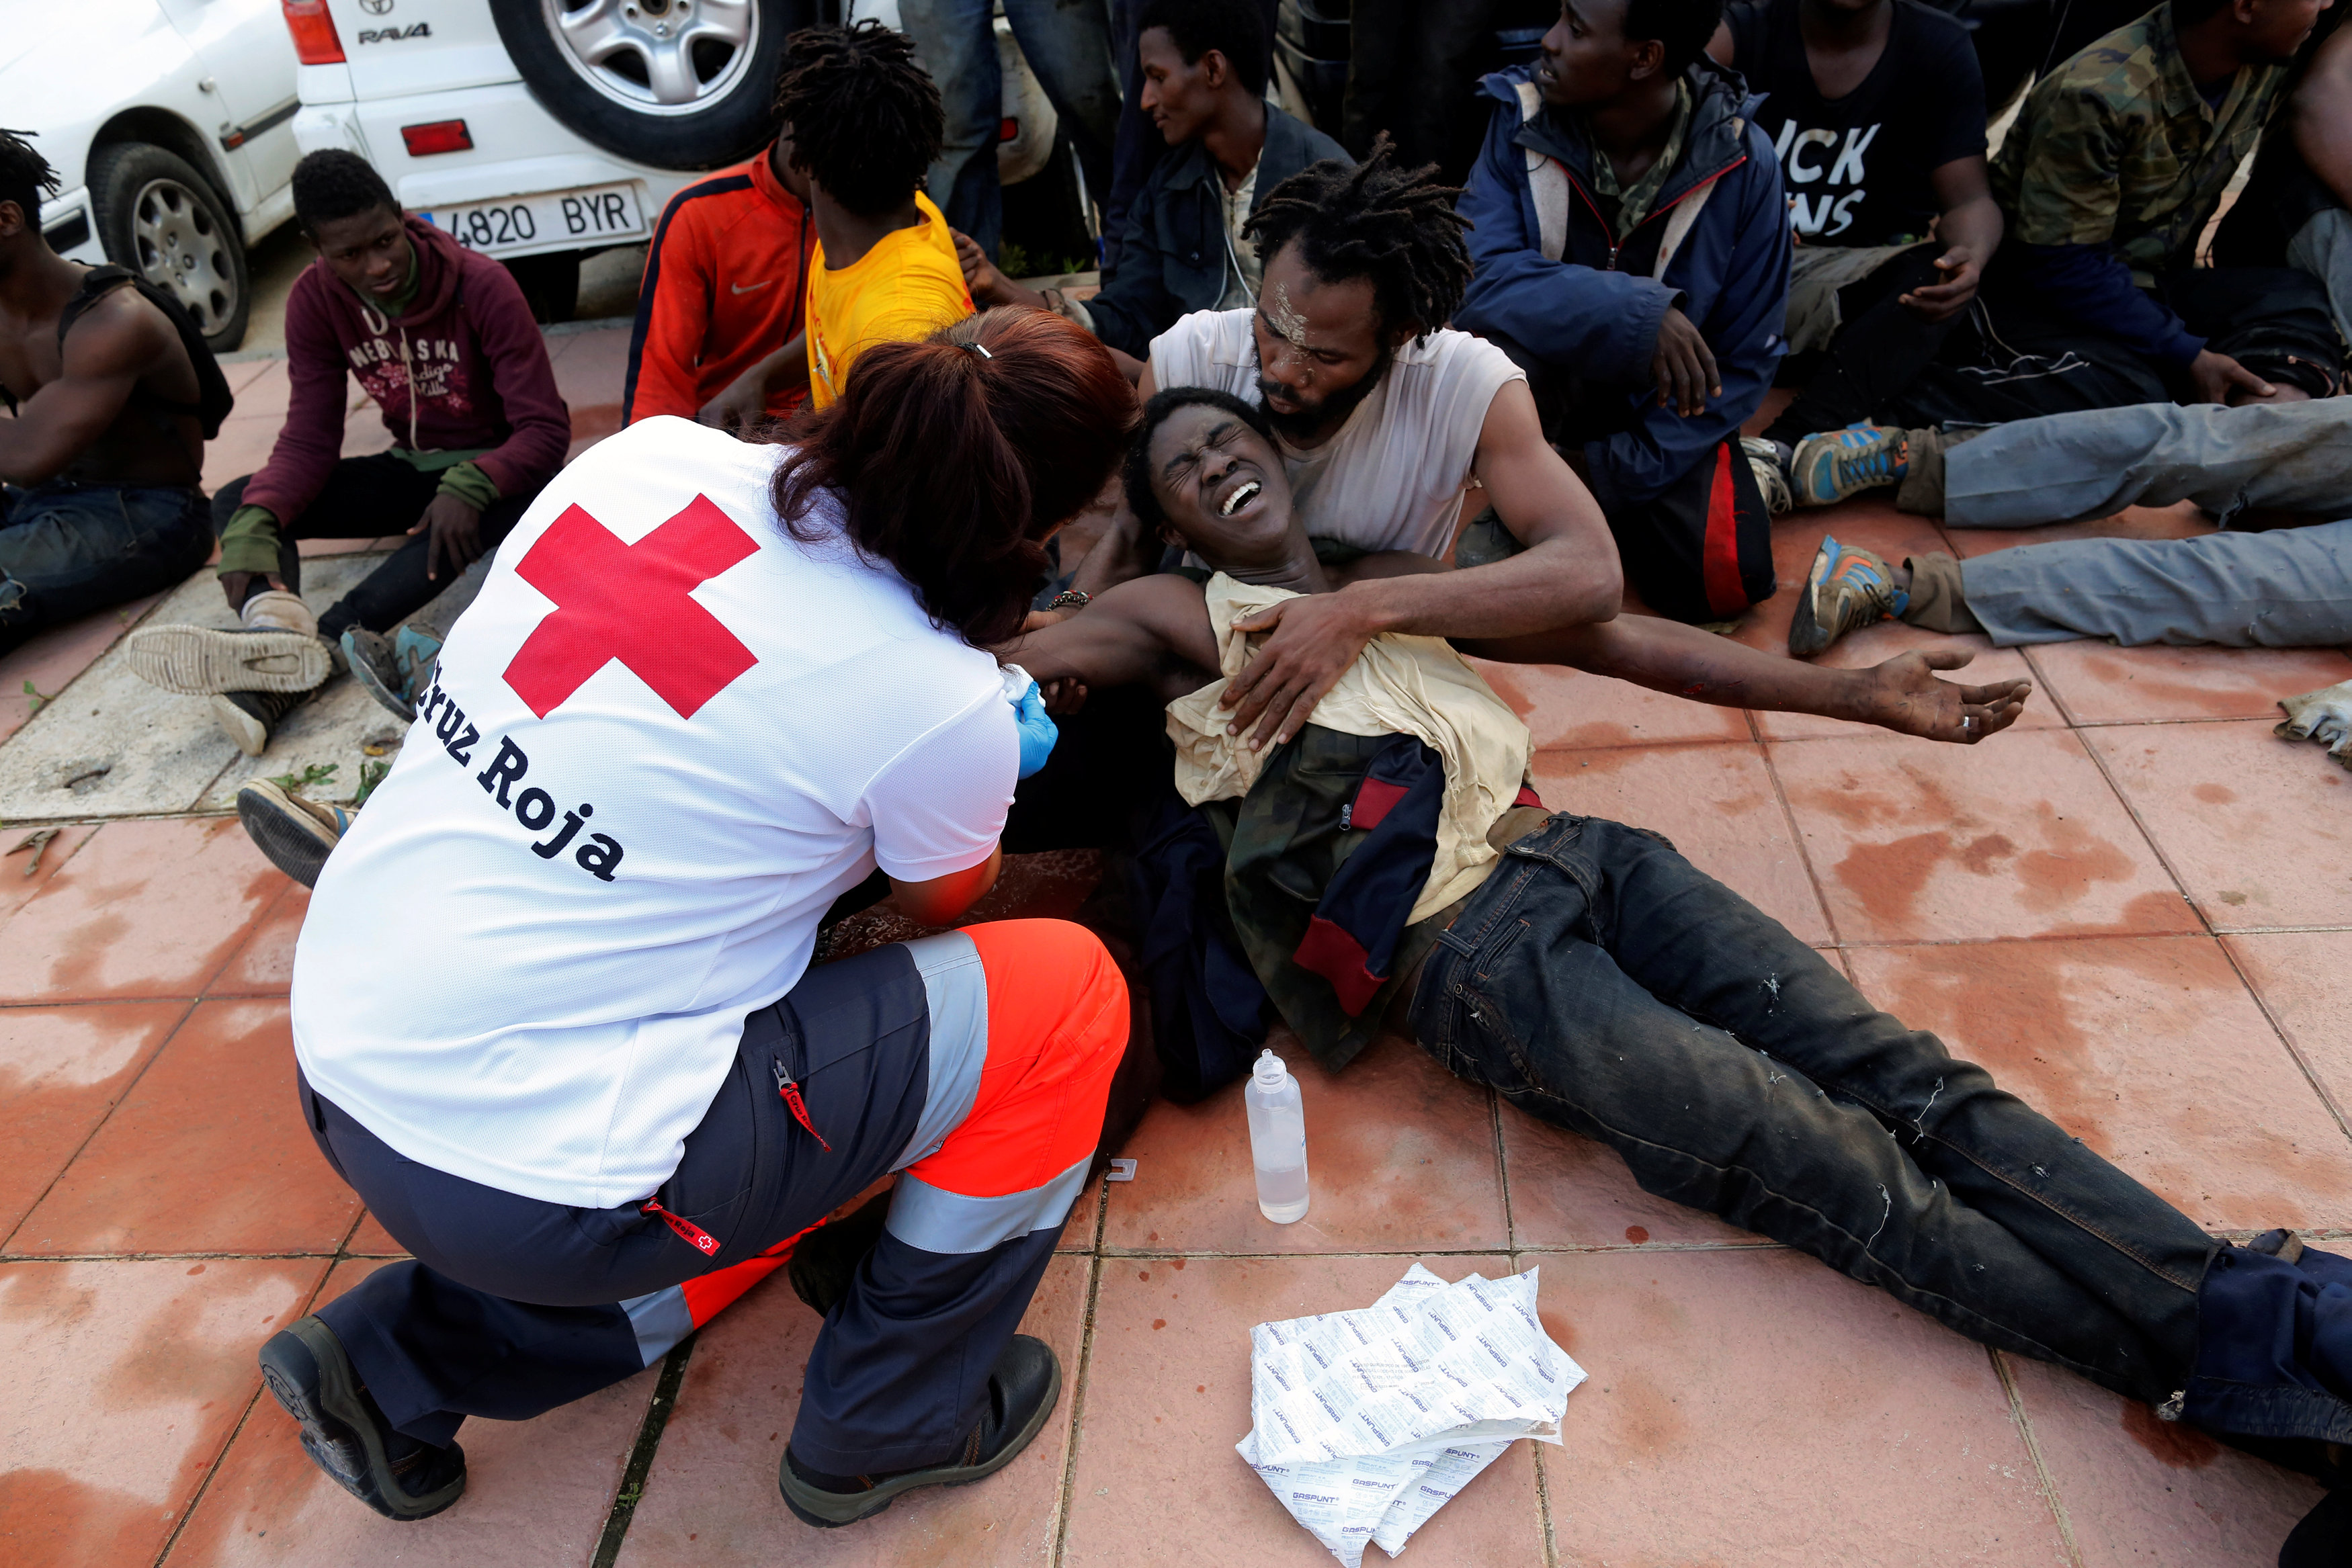 A Spanish Red Cross worker aids African migrants after they crossed a border fence between Morocco and Spain's north African enclave of Ceuta